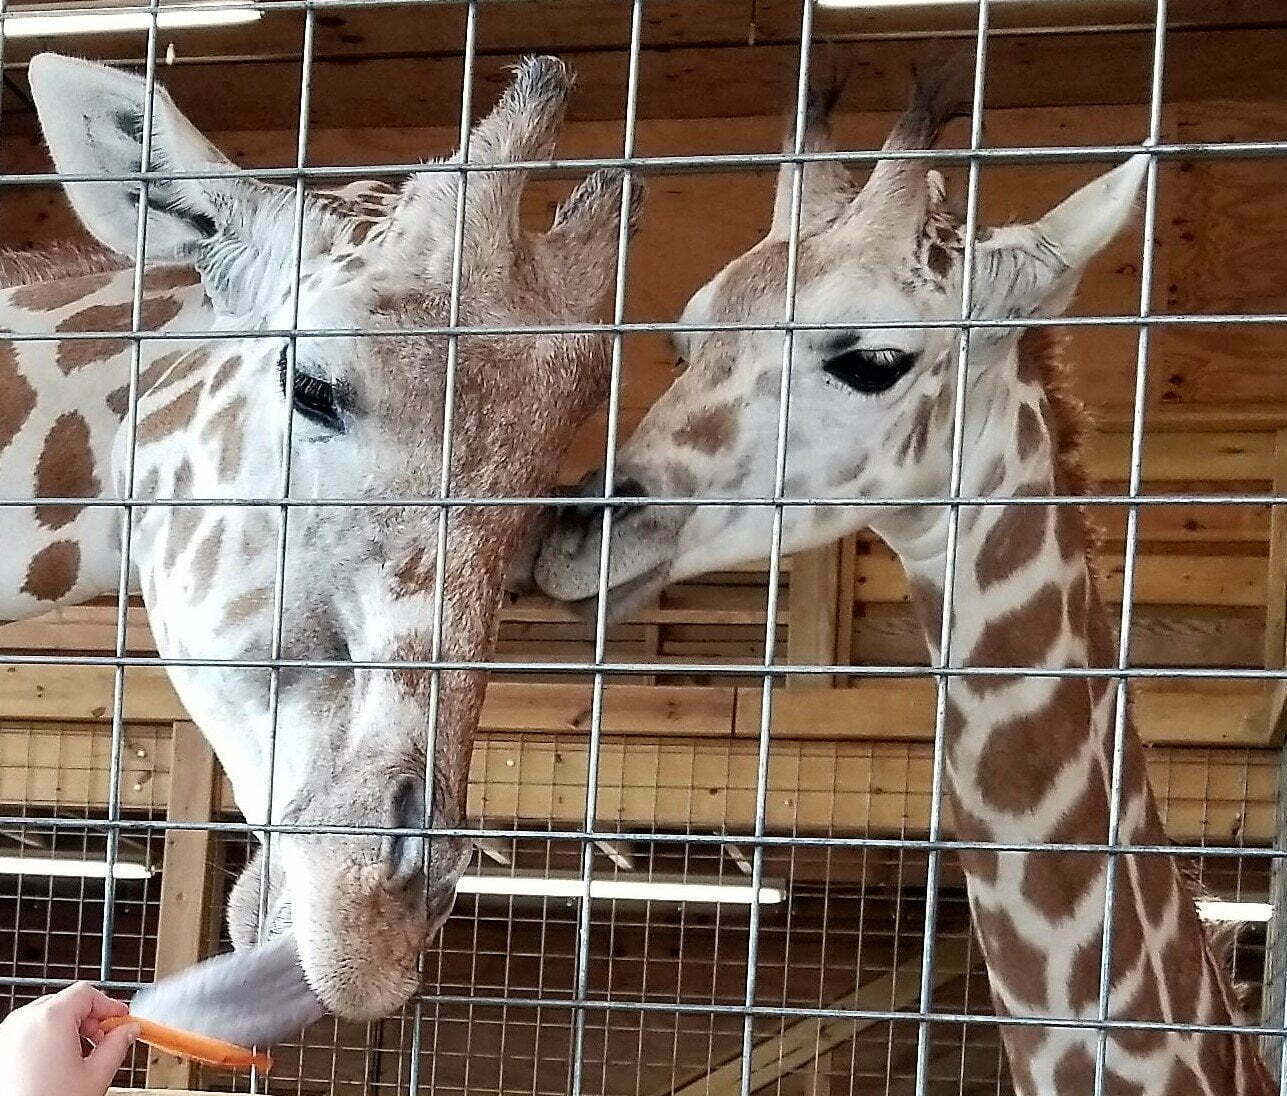 momma giraffe and baby giraffe greet a visitor and eat carrots